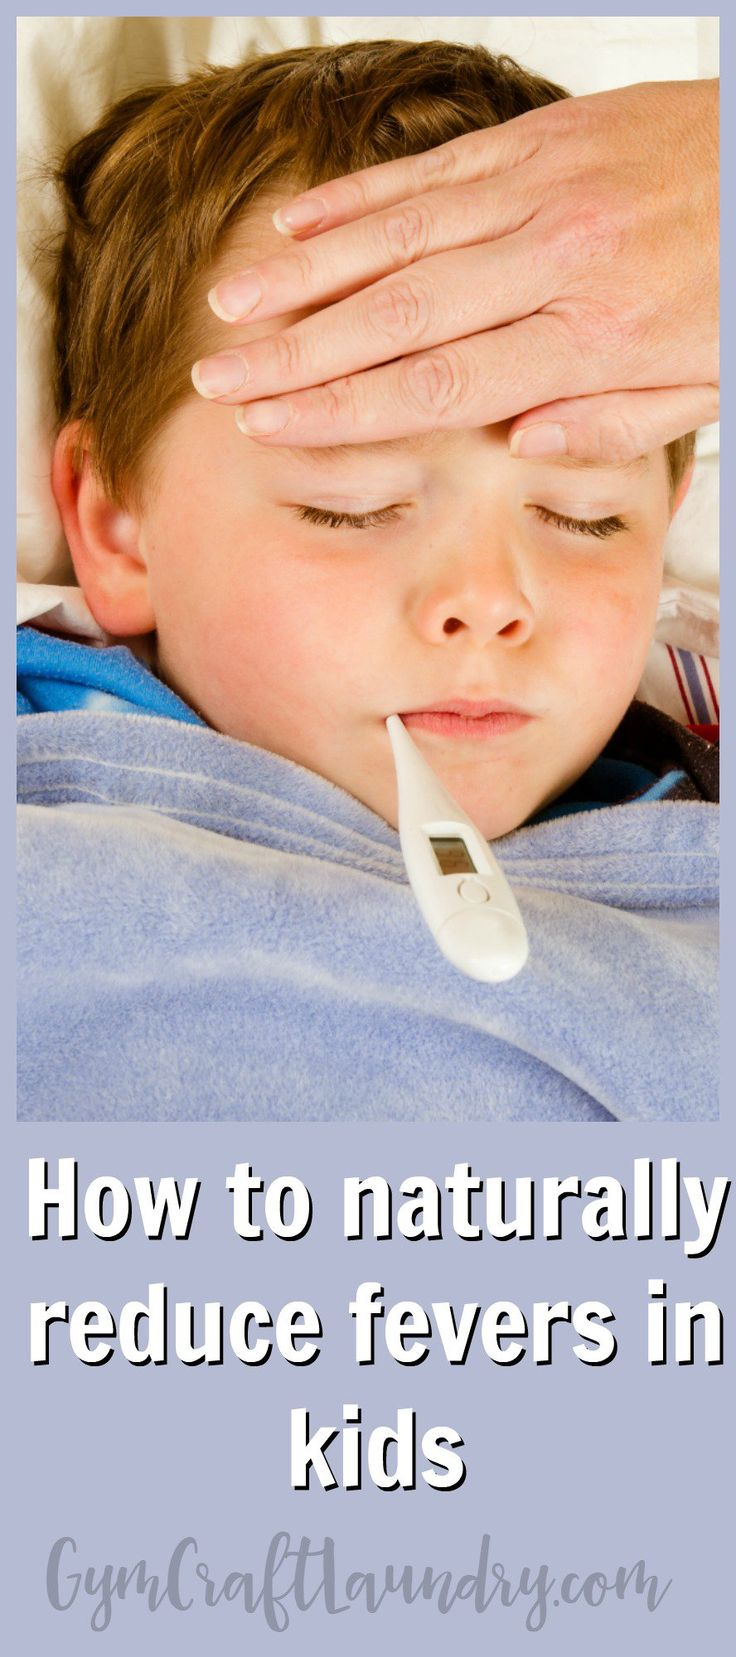 How to naturally reduce fevers in kids. Also, who my family calls for immediate help online when we need a doctor. Sick kid hacks from Gymcraftlaundry.com